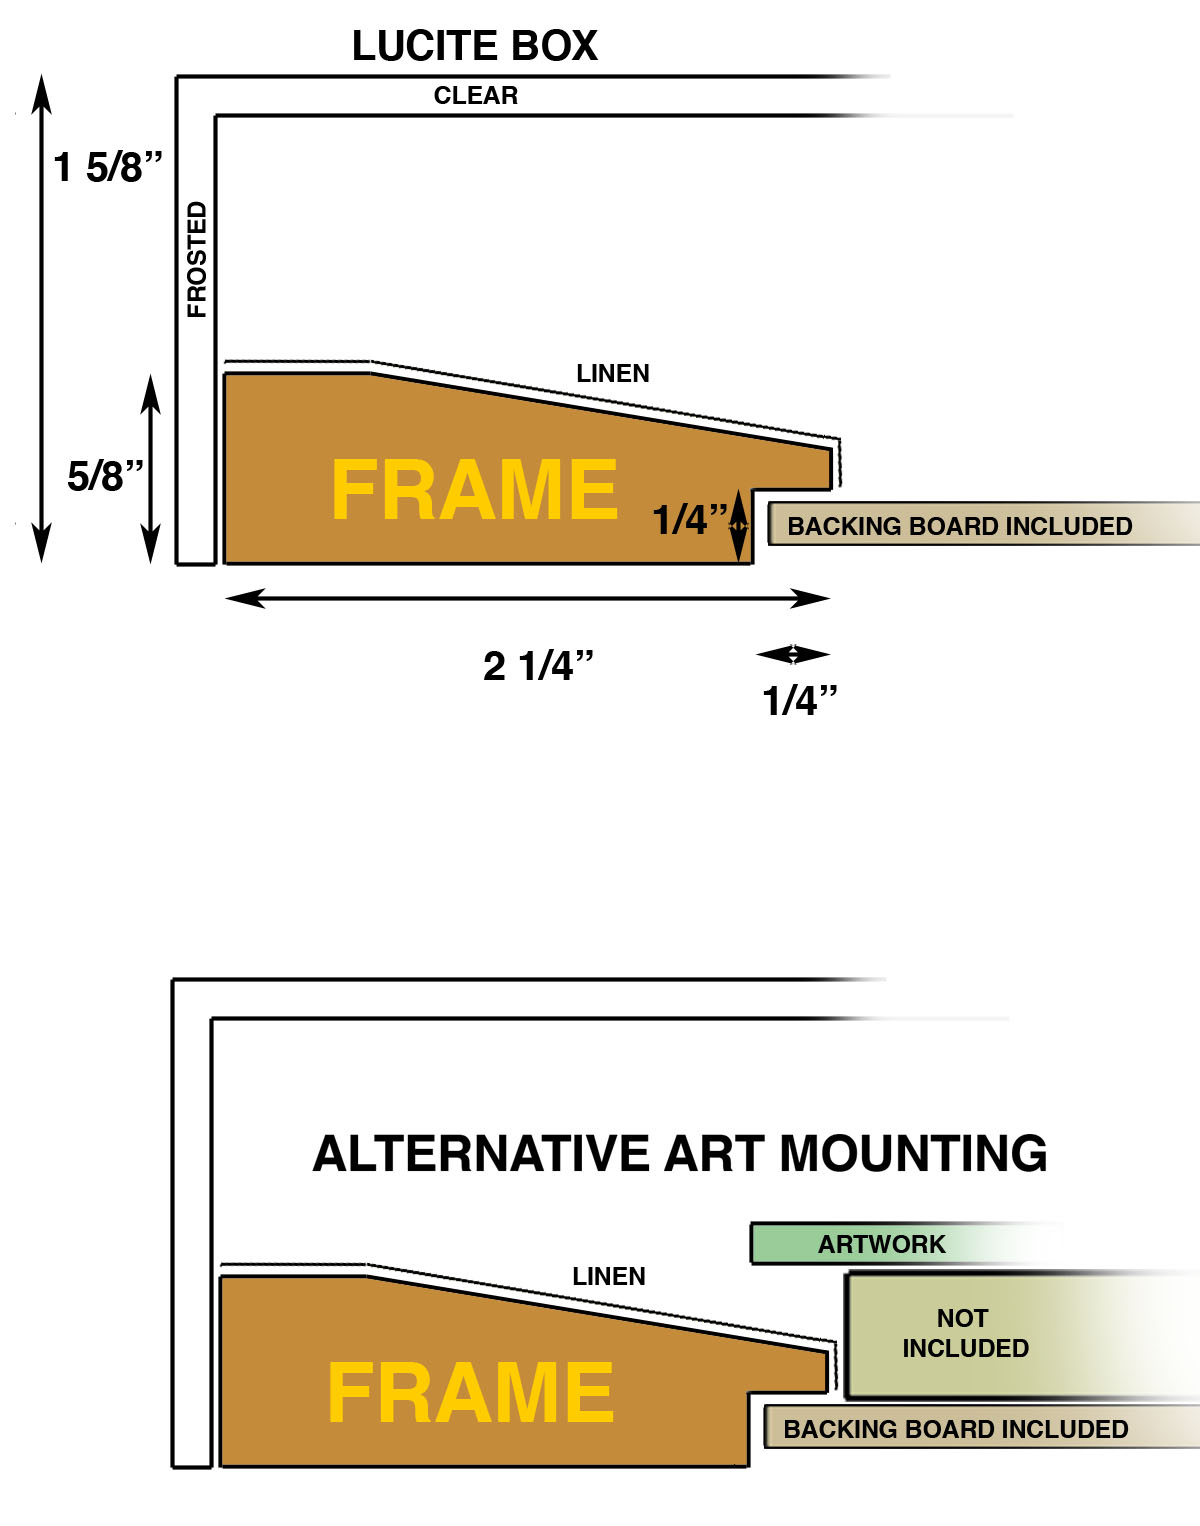 - Art can also be presented floated on a board (not included) glued to the backing board.